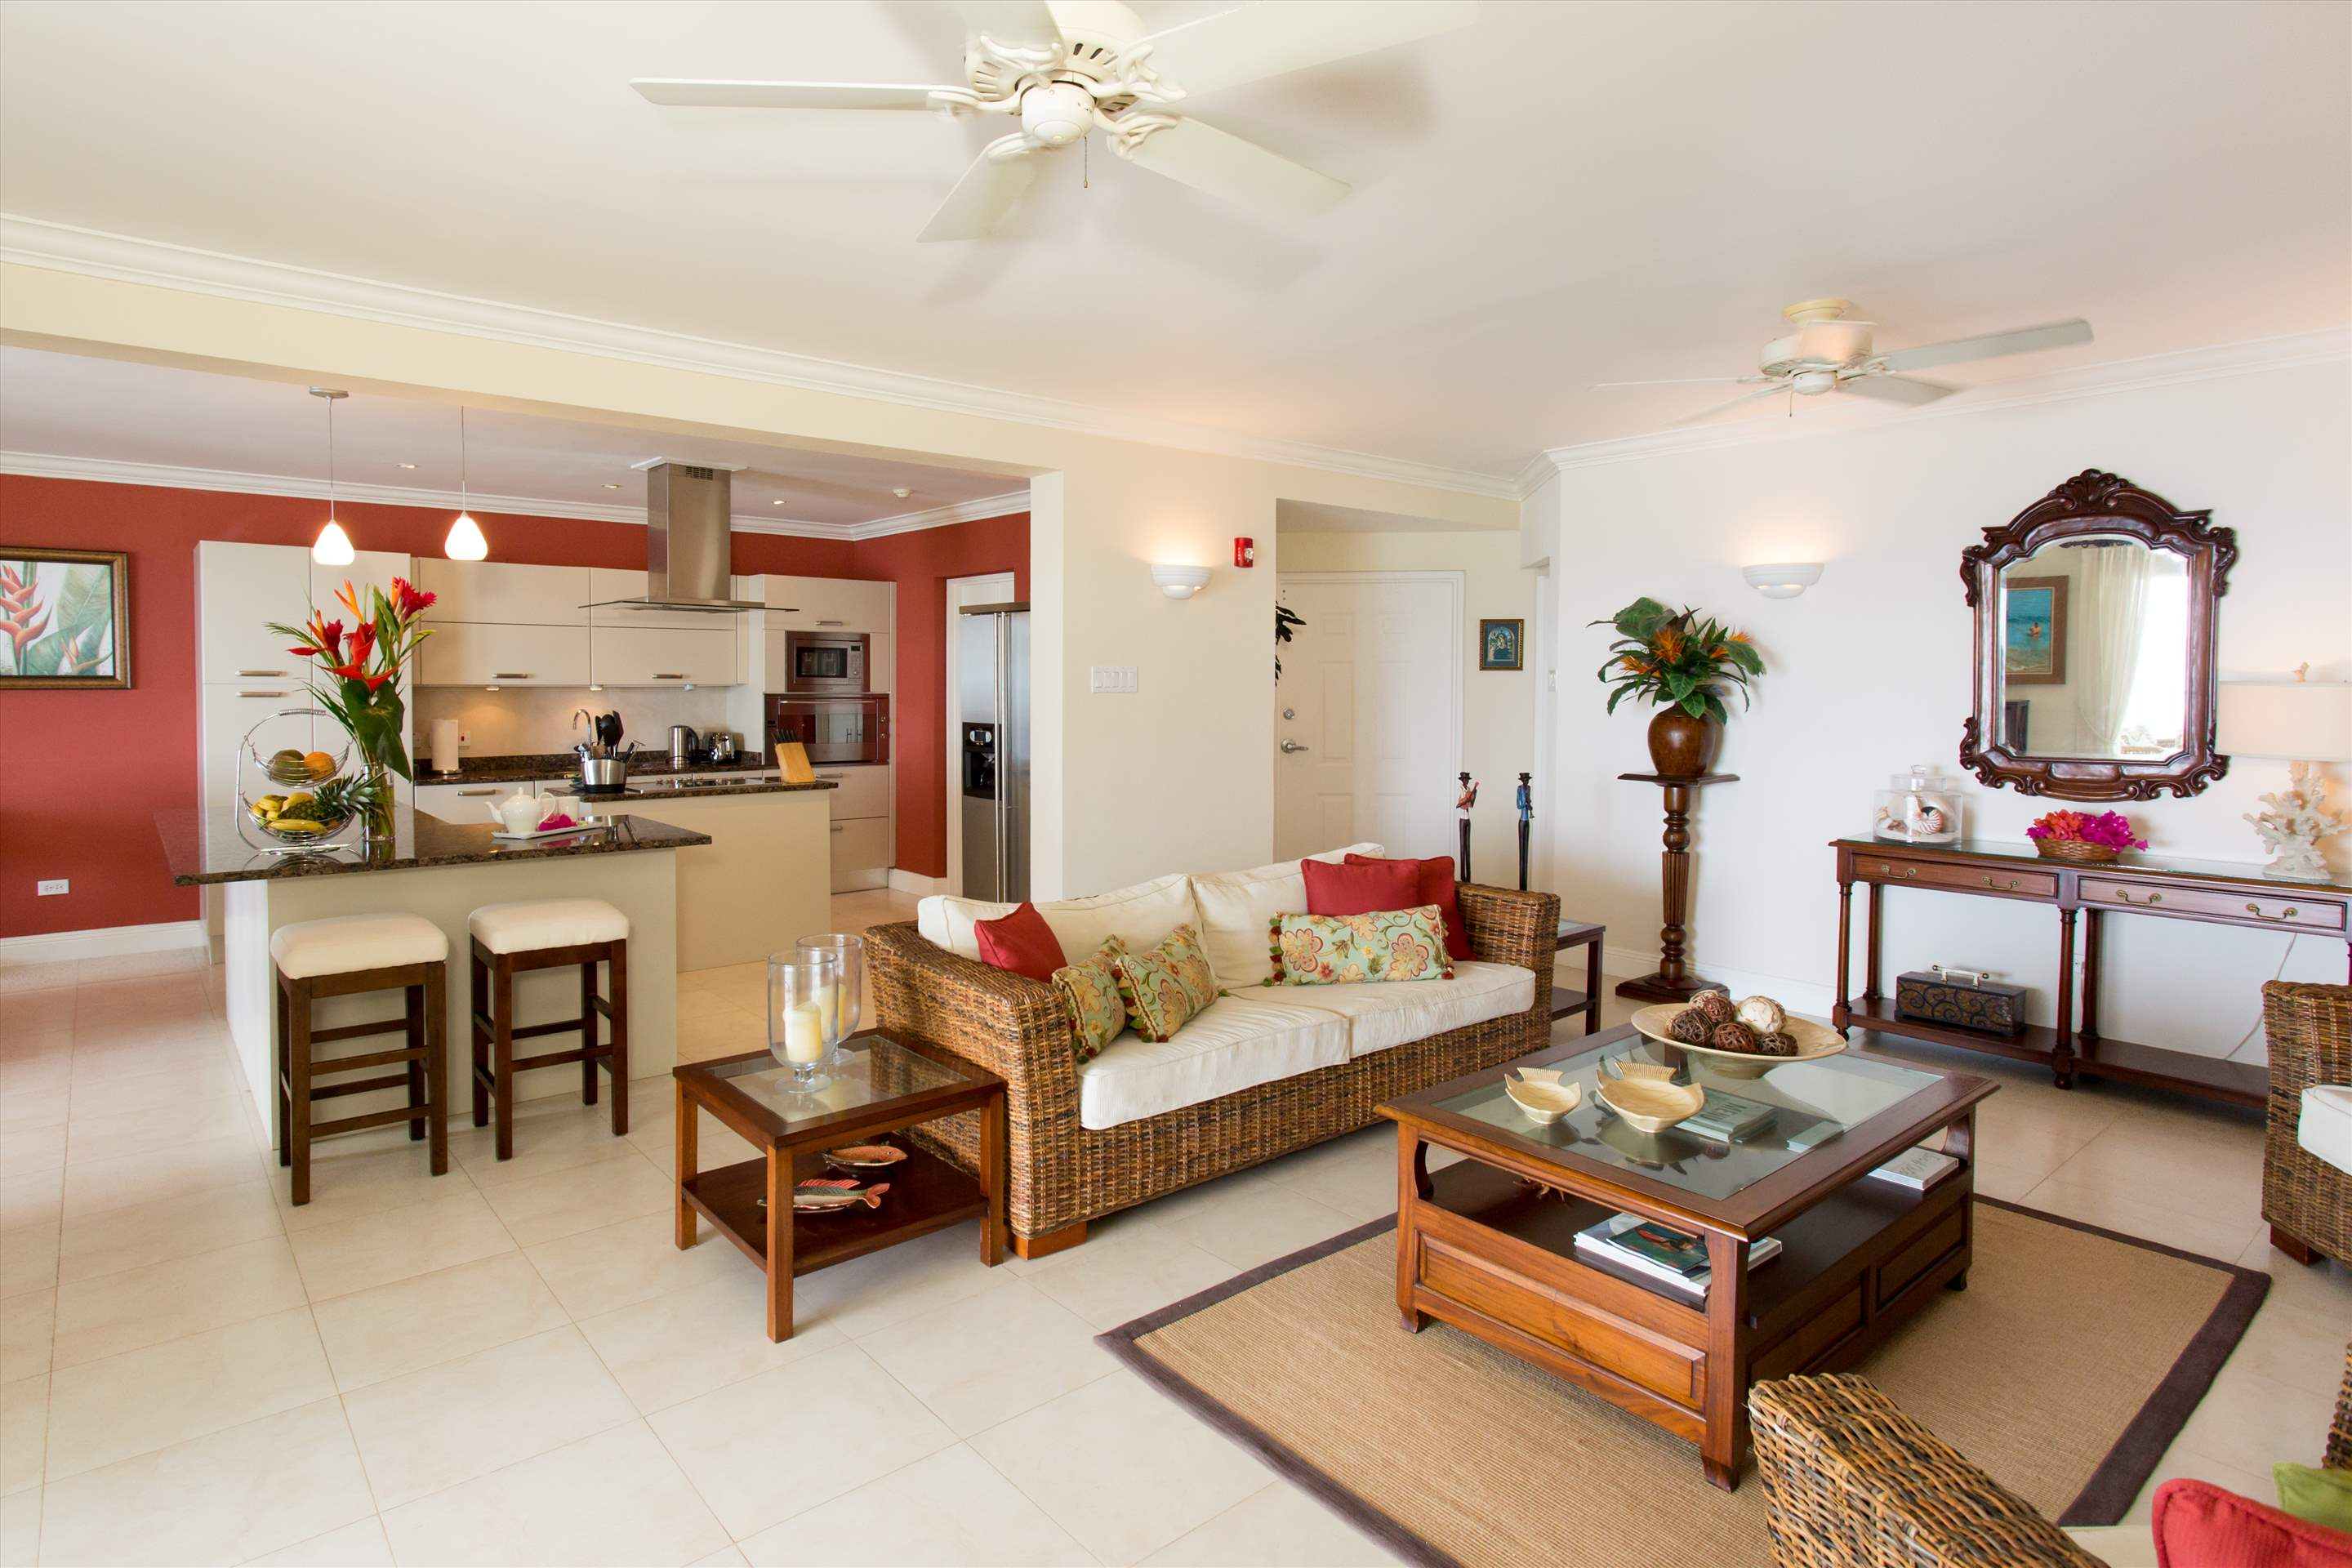 Sandy Hook 21, 2 bedroom, 2 bedroom villa in St. Lawrence Gap & South Coast, Barbados Photo #6